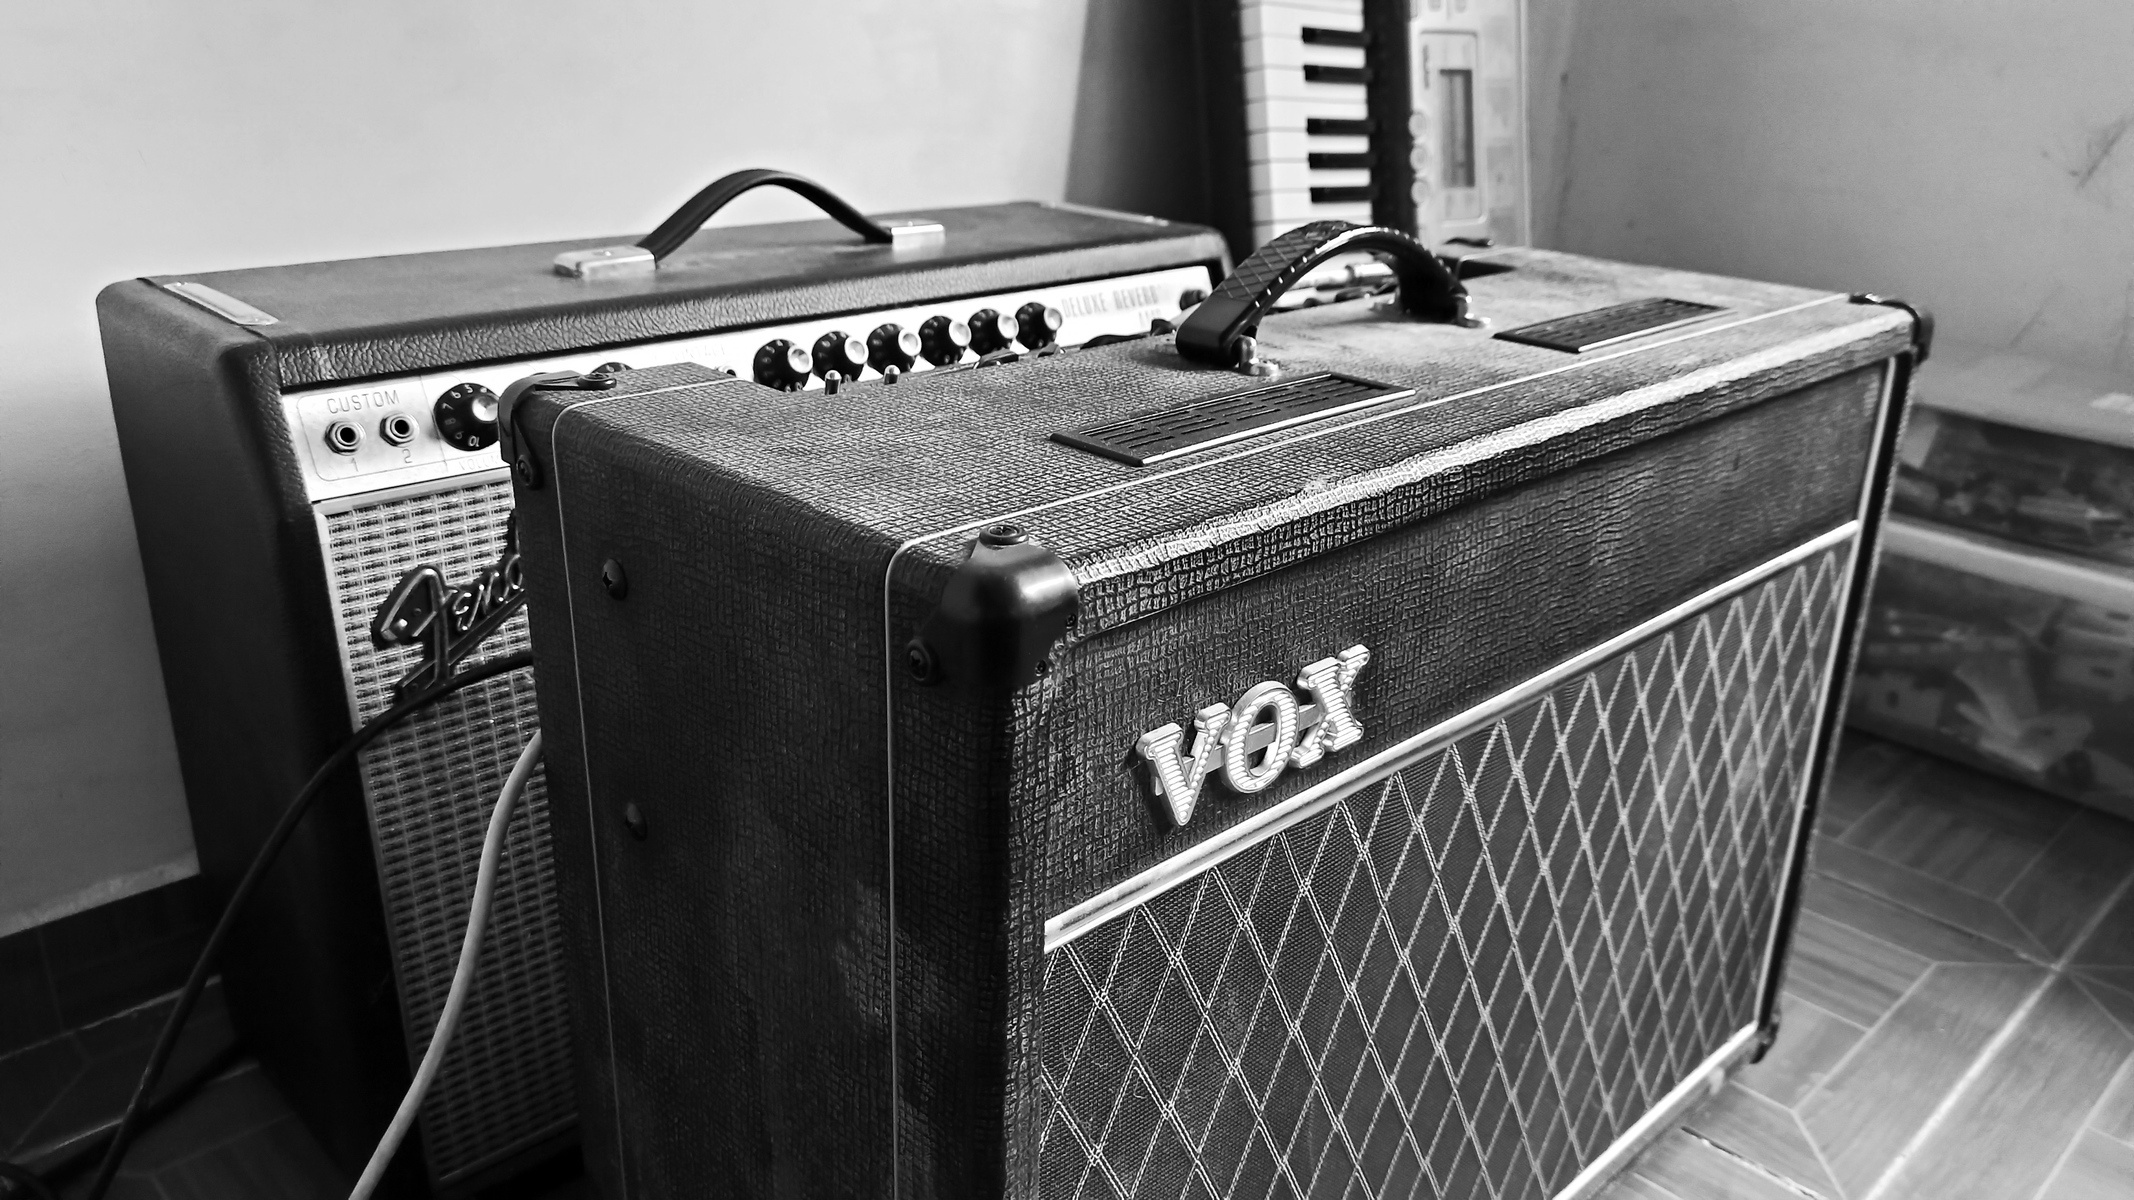 Photo of Fender '68 Custom Deluxe Reverb Guitar Amplifier and more gear in a studio and guitar